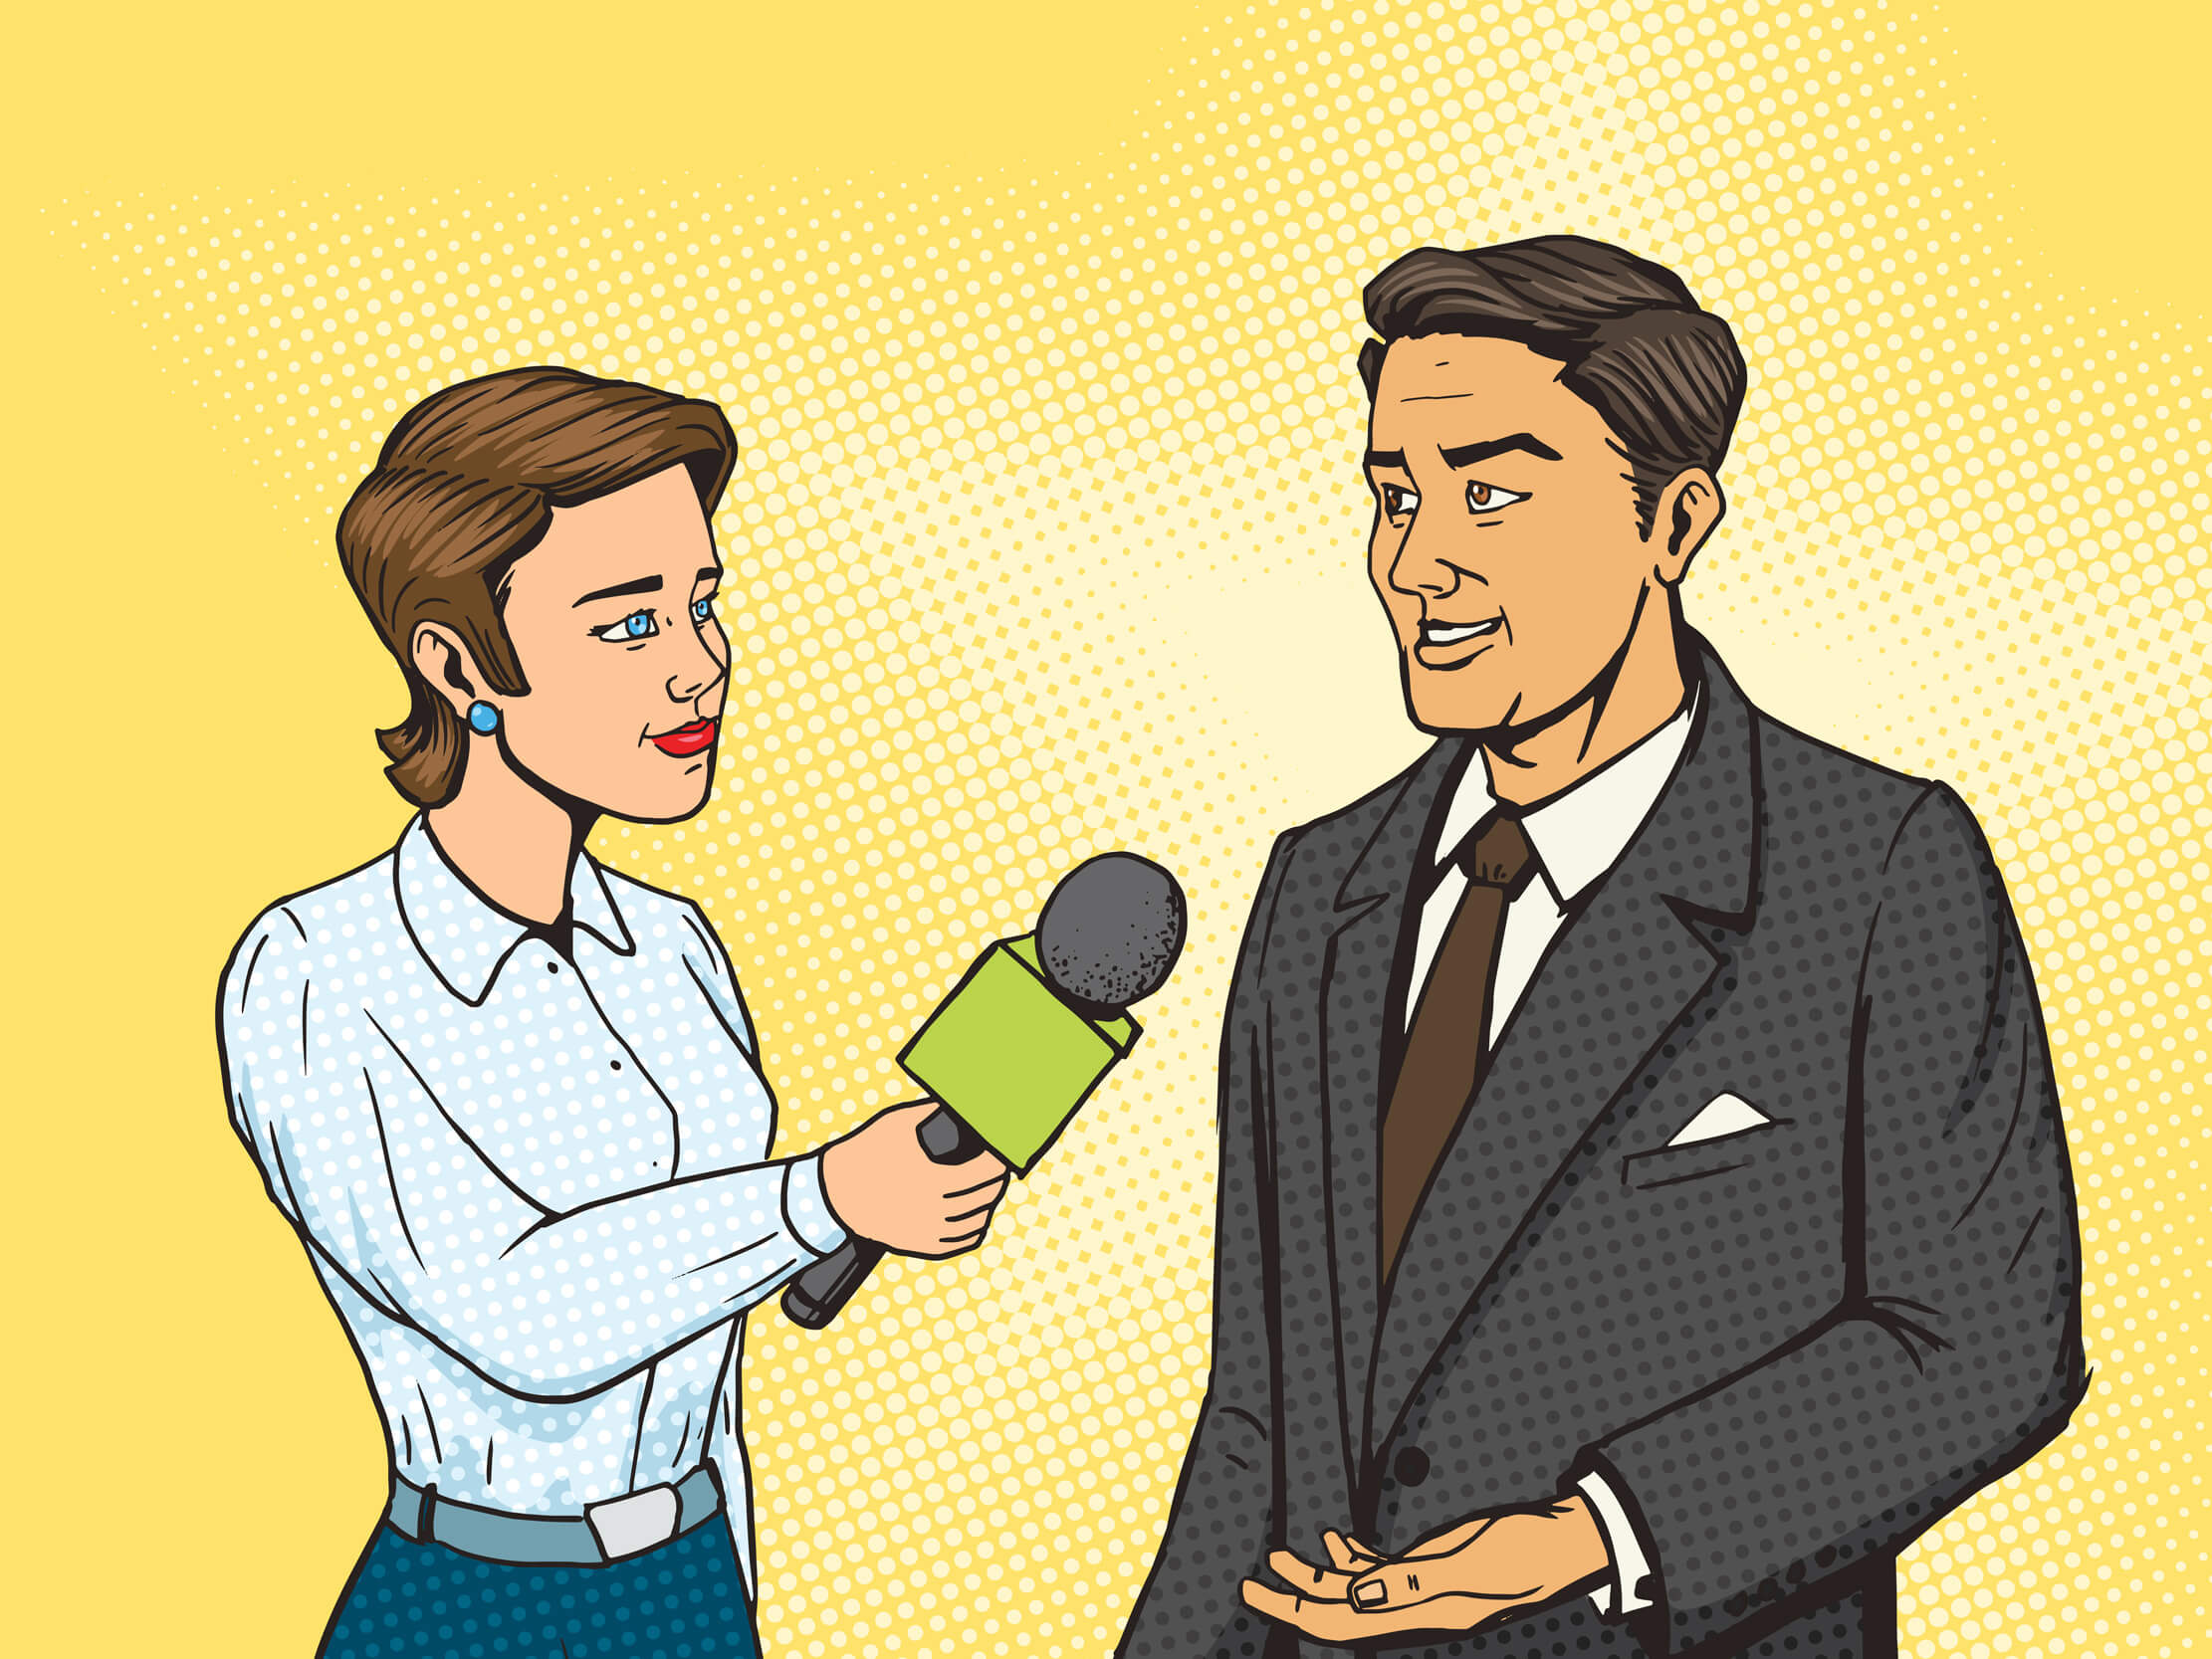 improve chances of getting quoted by a reporter